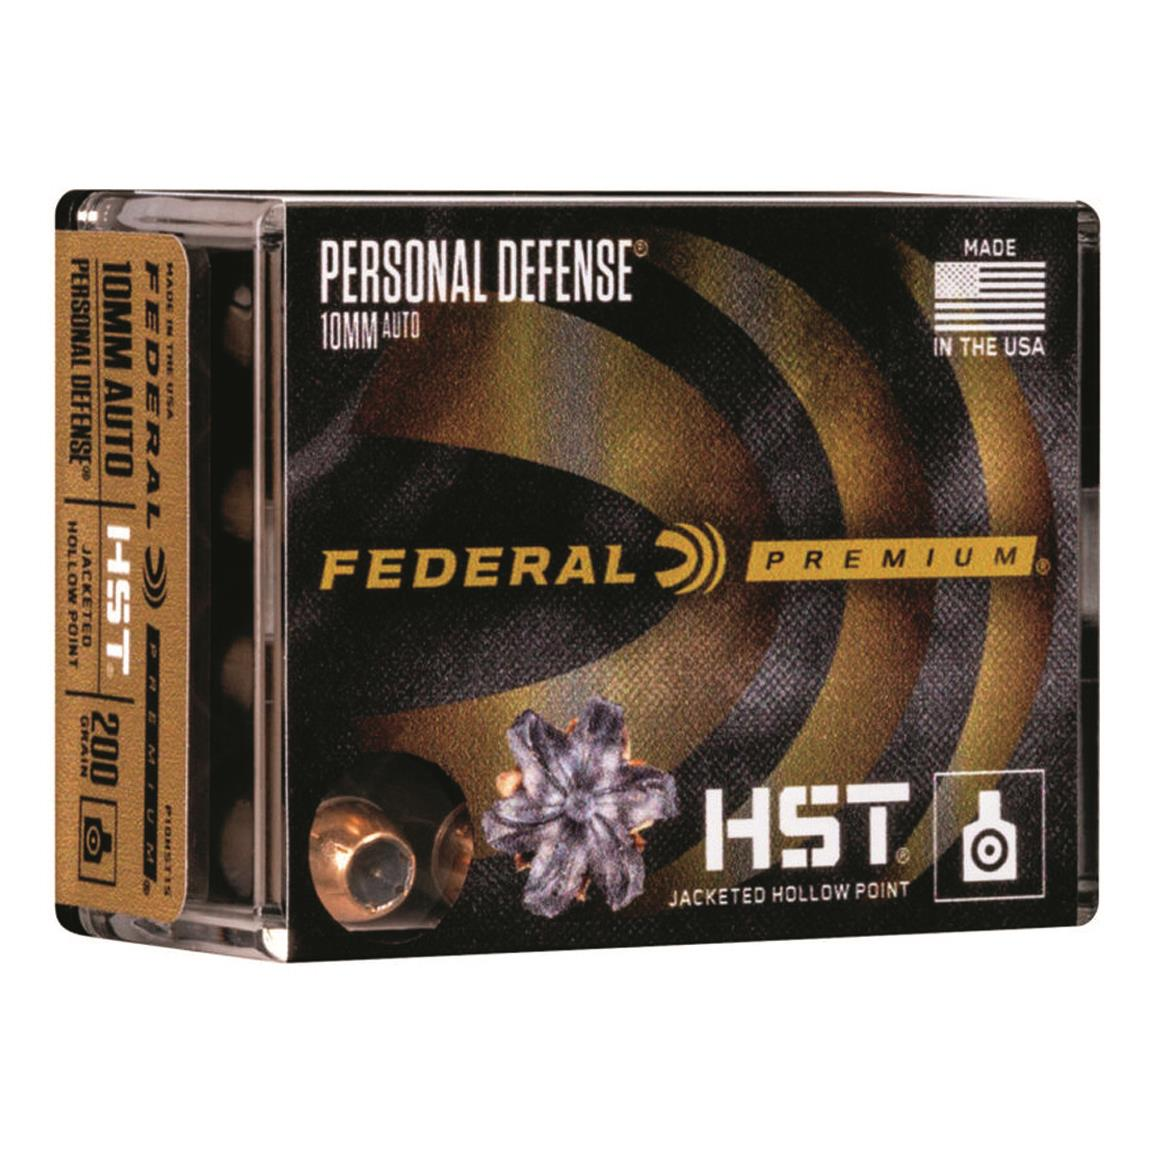 Federal Premium Personal Defense HST, 10mm, JHP, 200 Grain, 20 Rounds